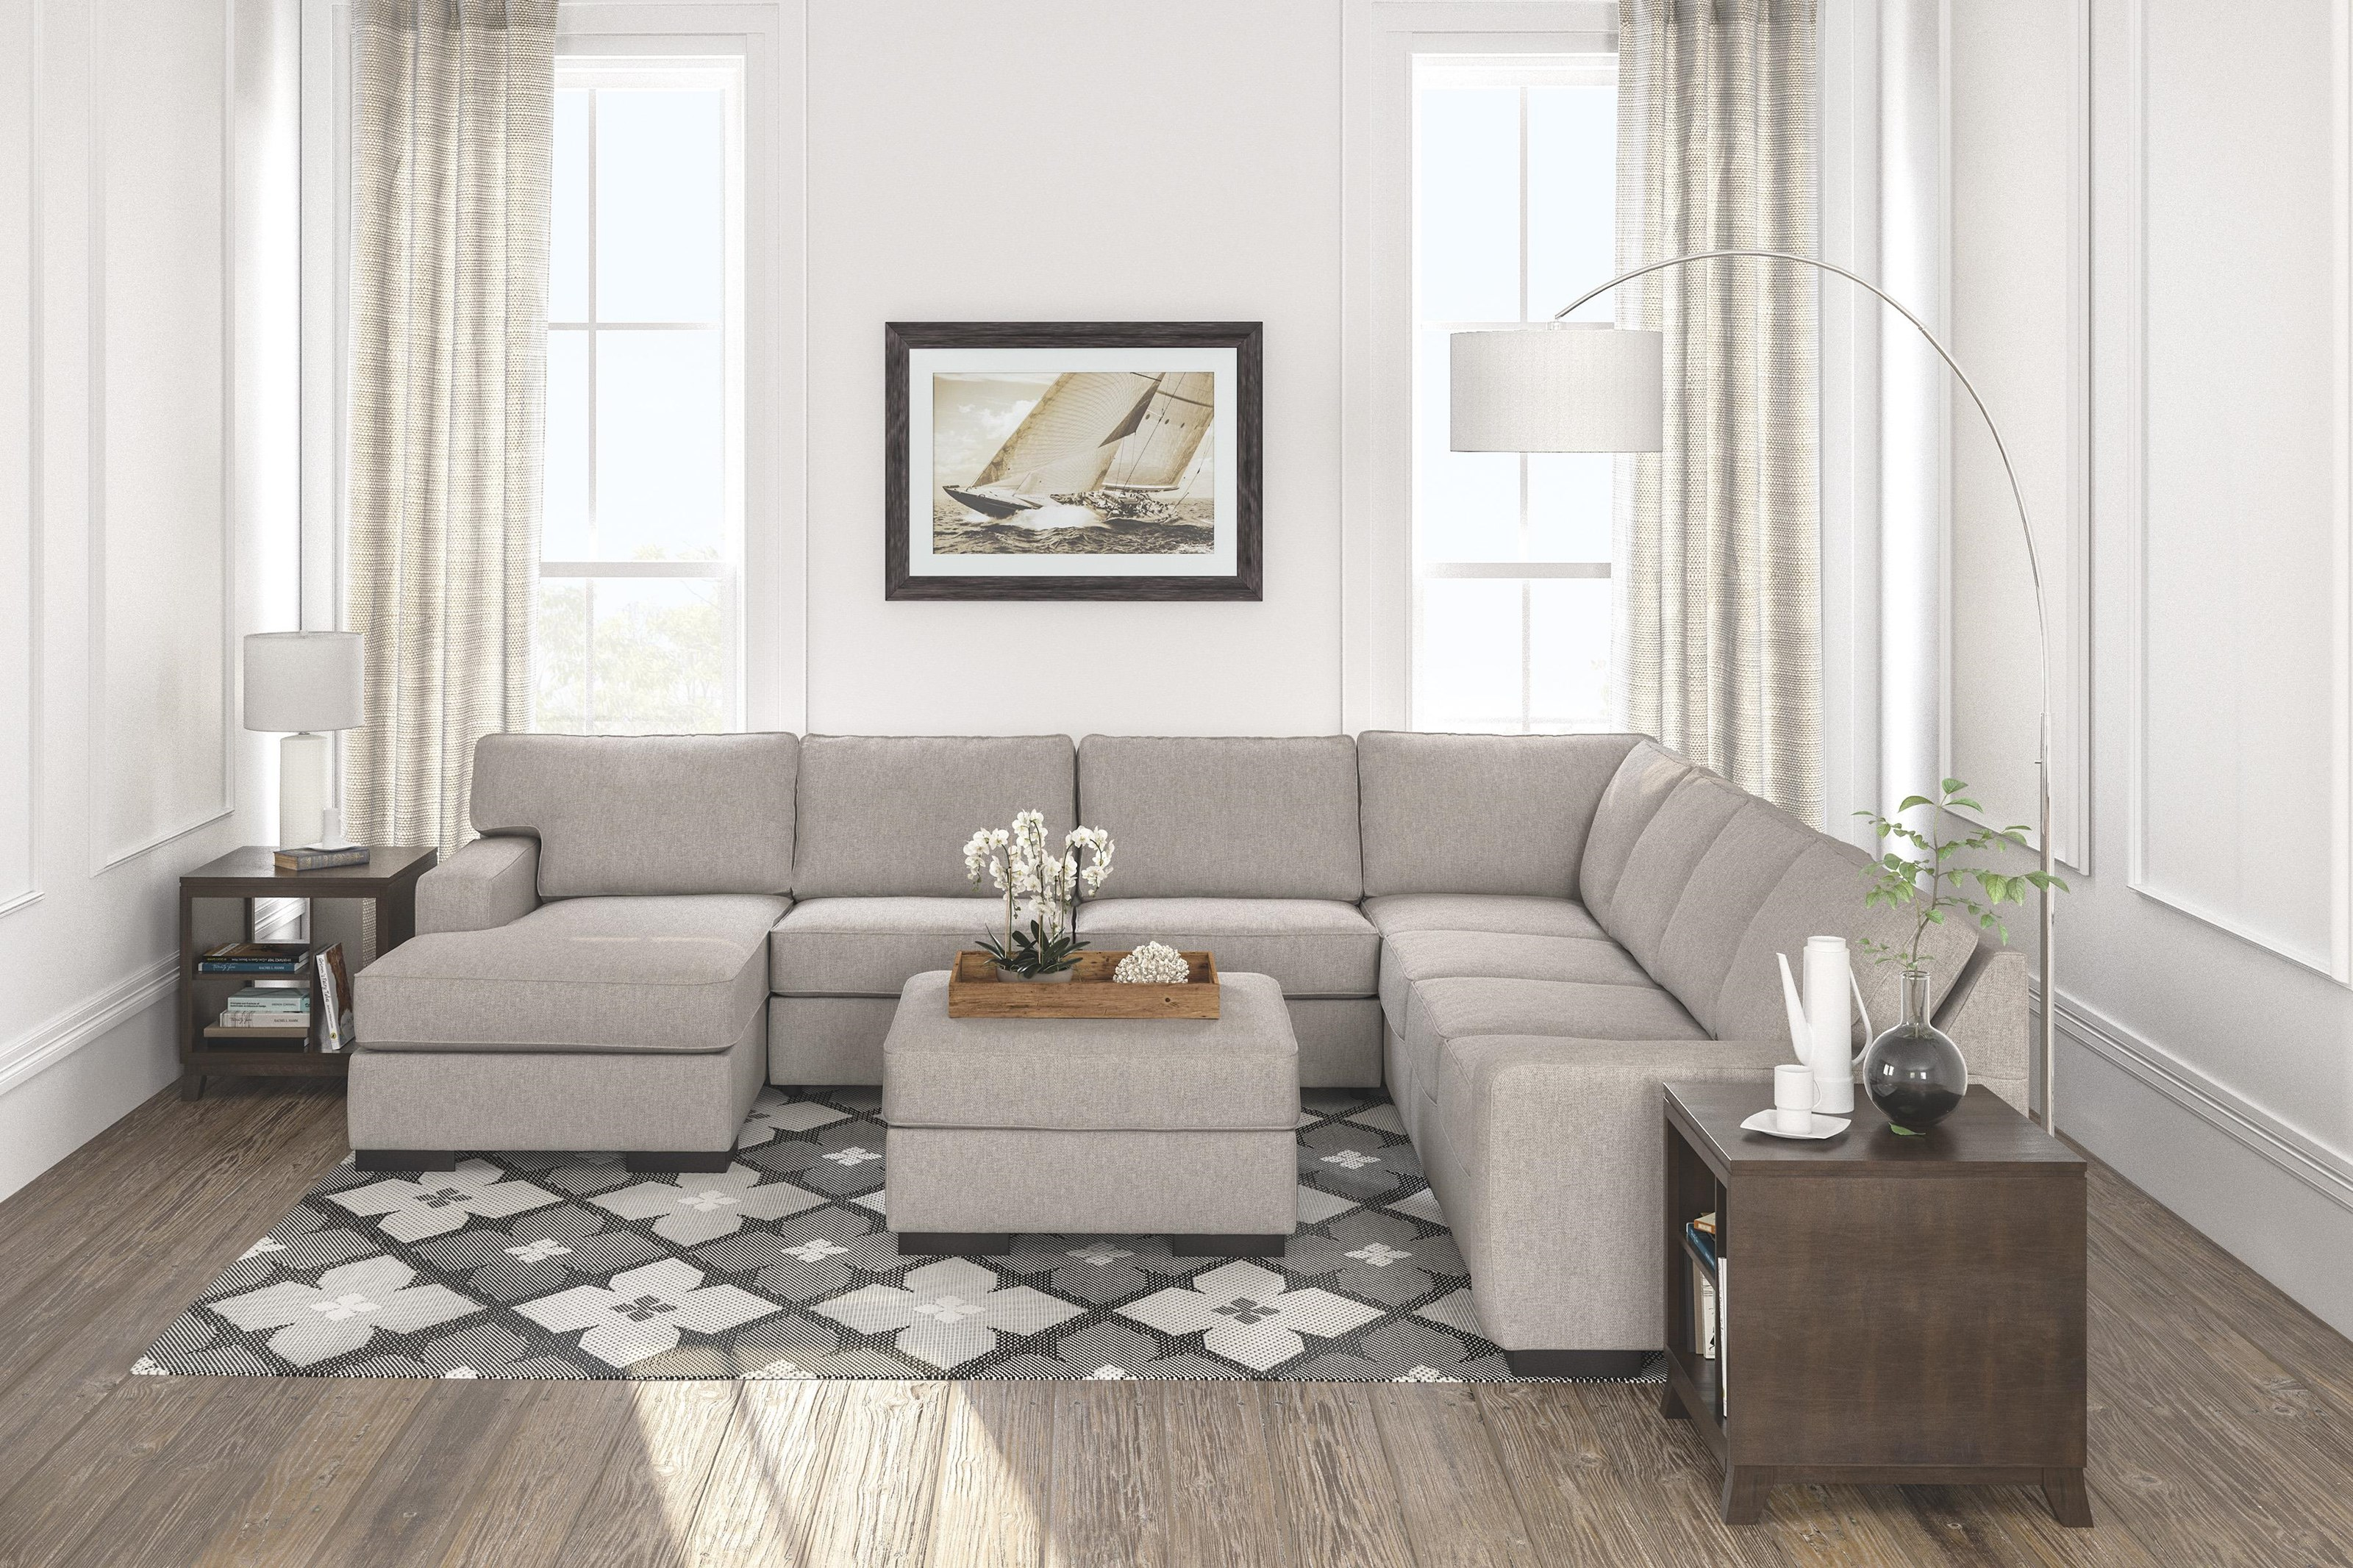 5 PC Sectional Set